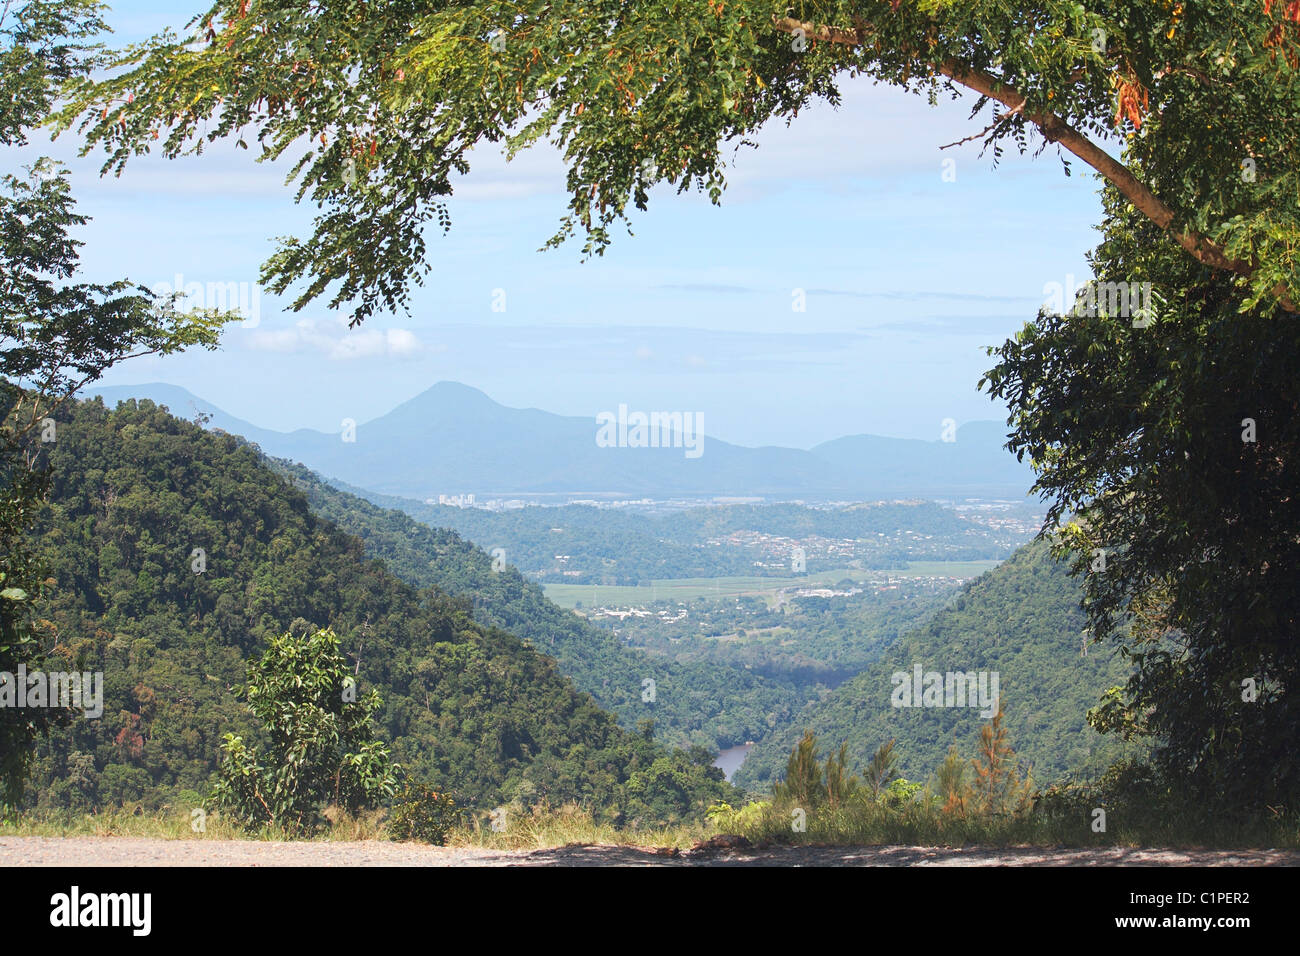 Australia, Atherton Tableland, Barron Gorge National Park, View of valley with landscape - Stock Image